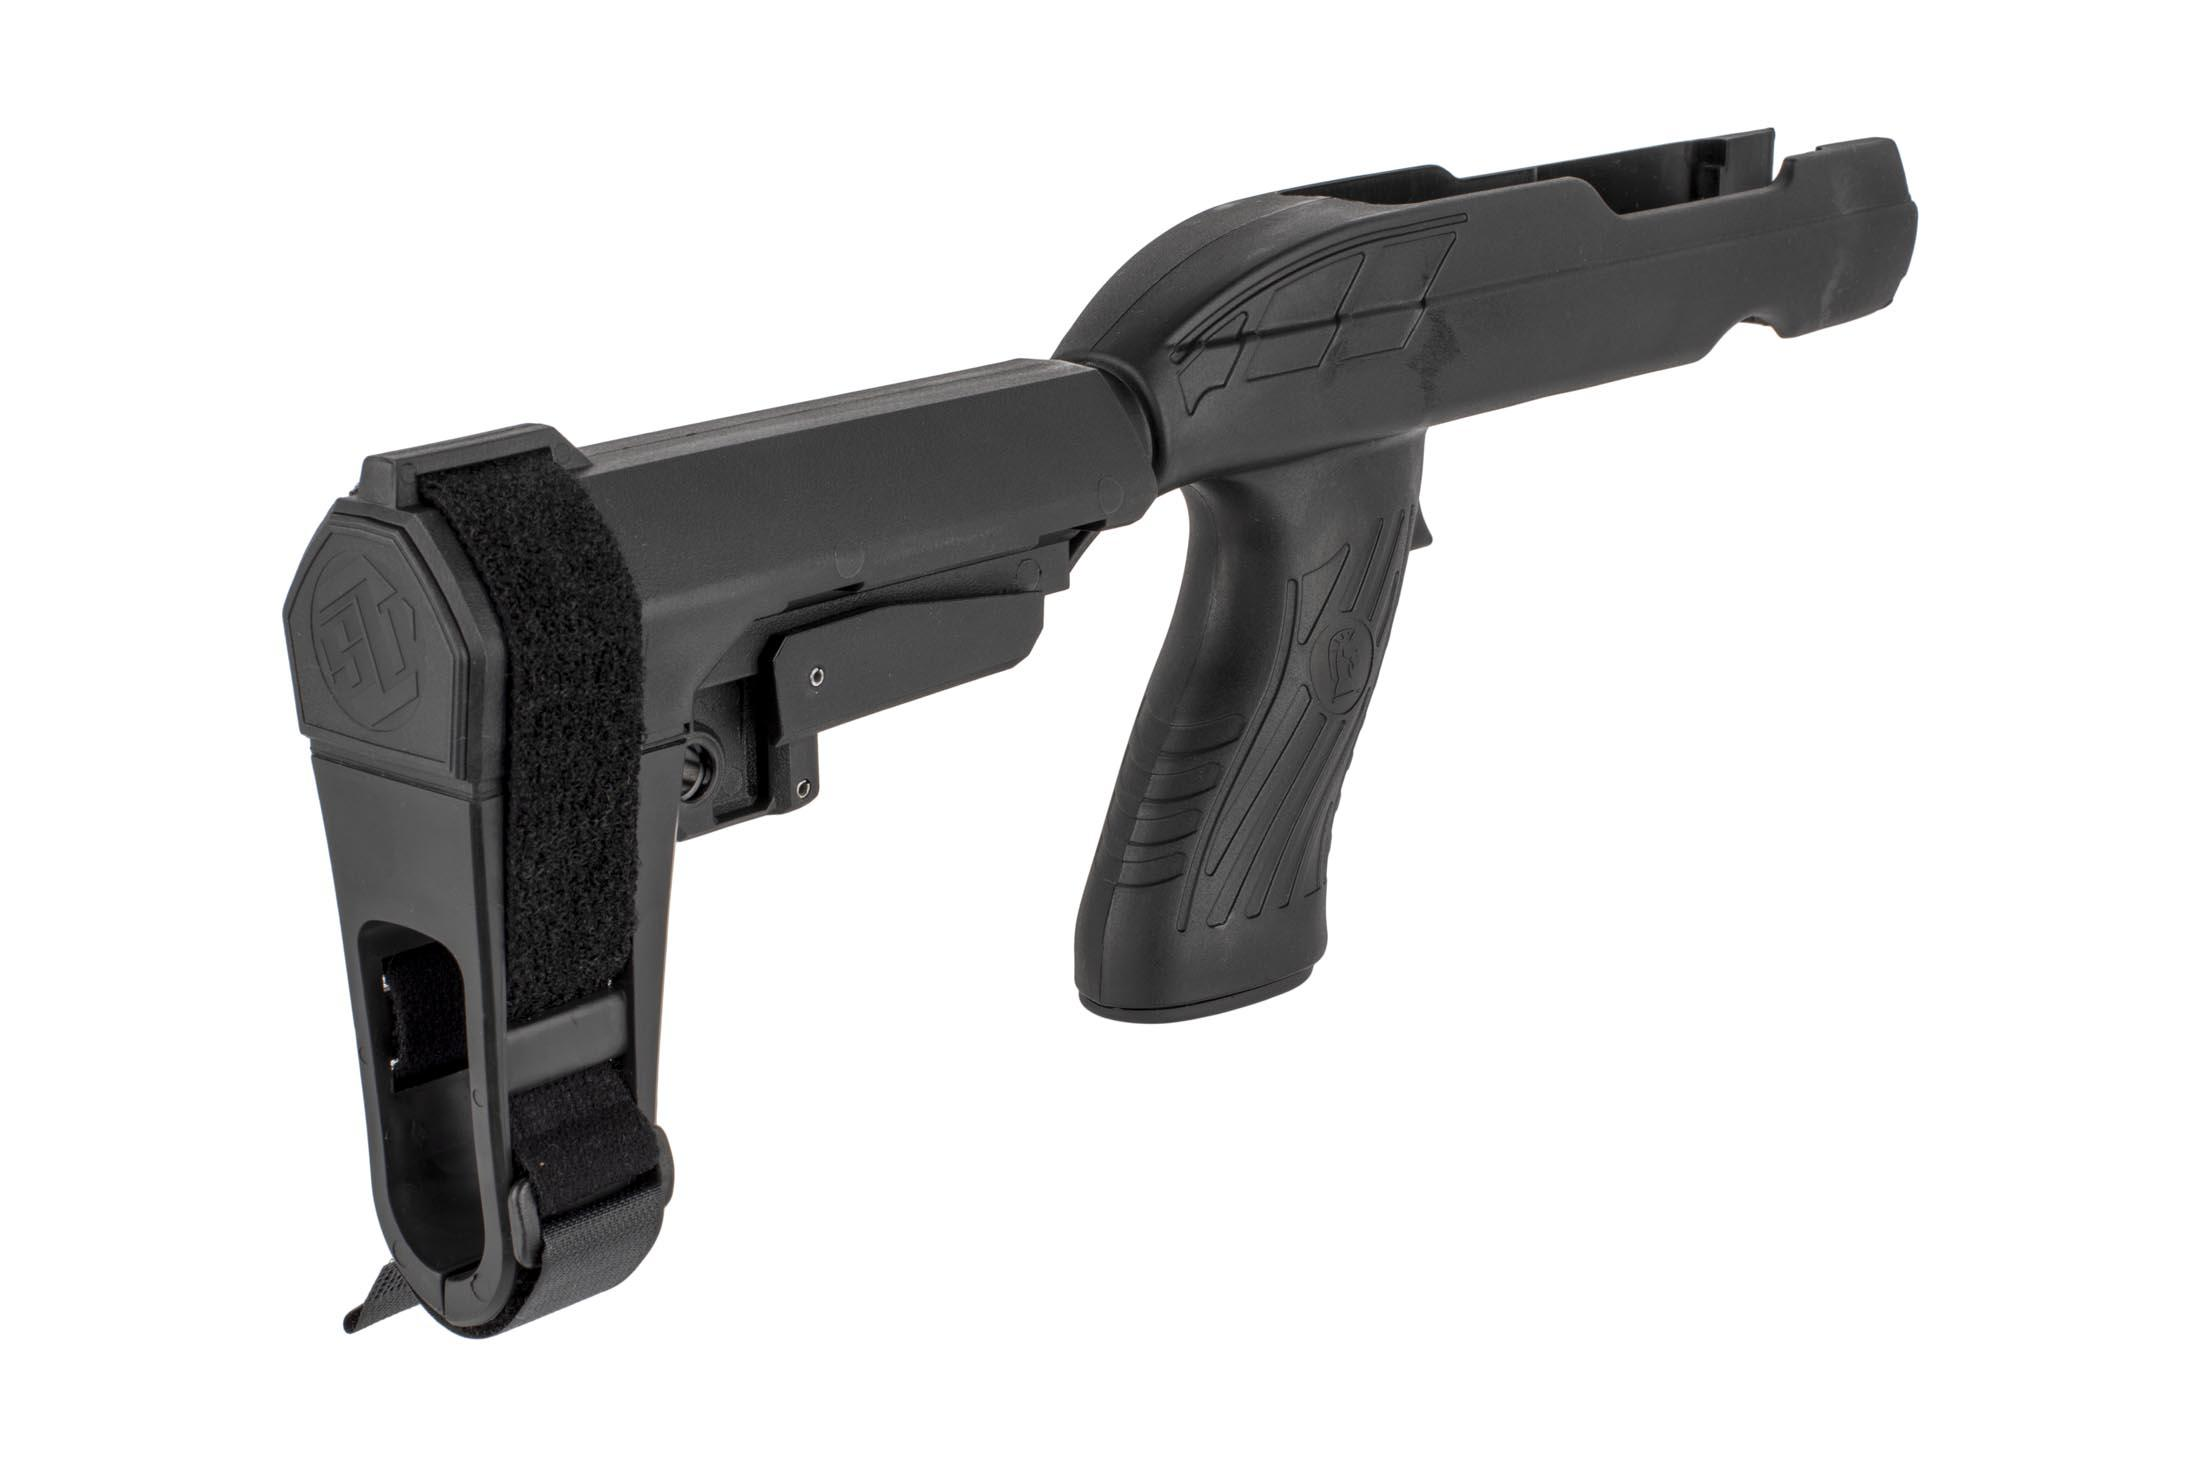 The SBA3 SB Tactical Ruger charger stock is made from reinforced polymer